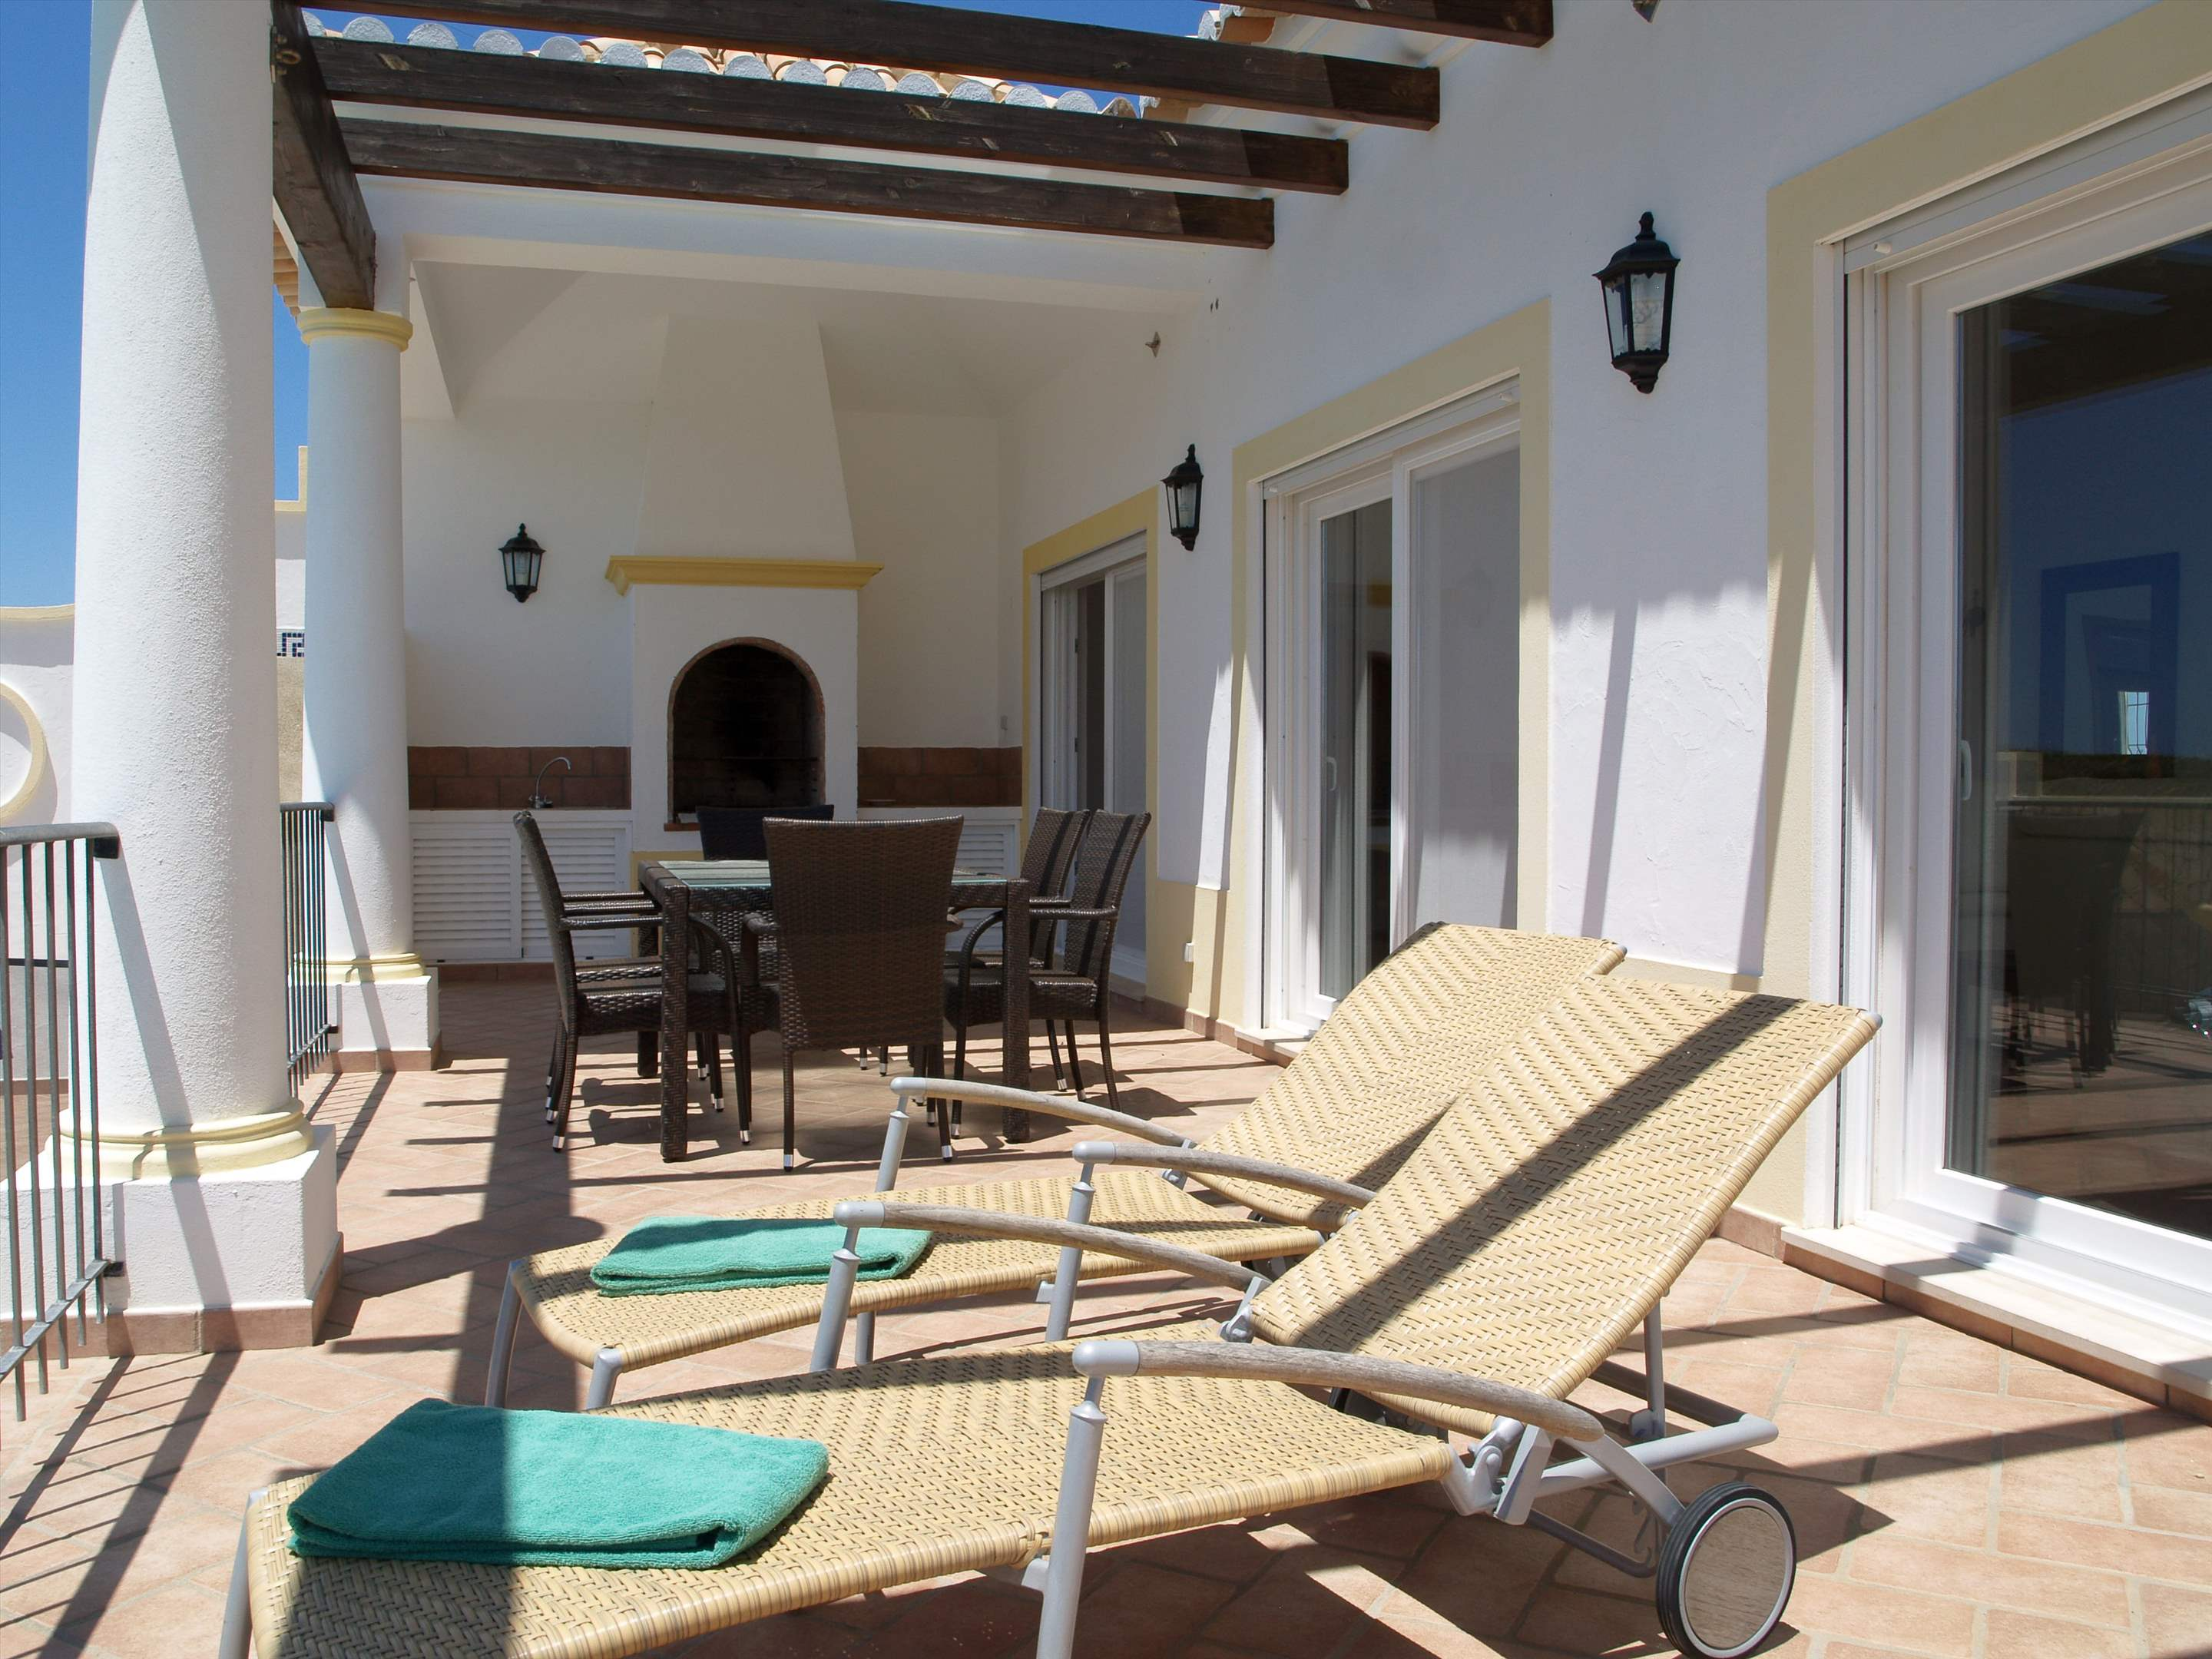 Martinhal Luxury Villa No.8, Three Bedroom Villa, 3 bedroom villa in Martinhal Sagres, Algarve Photo #5